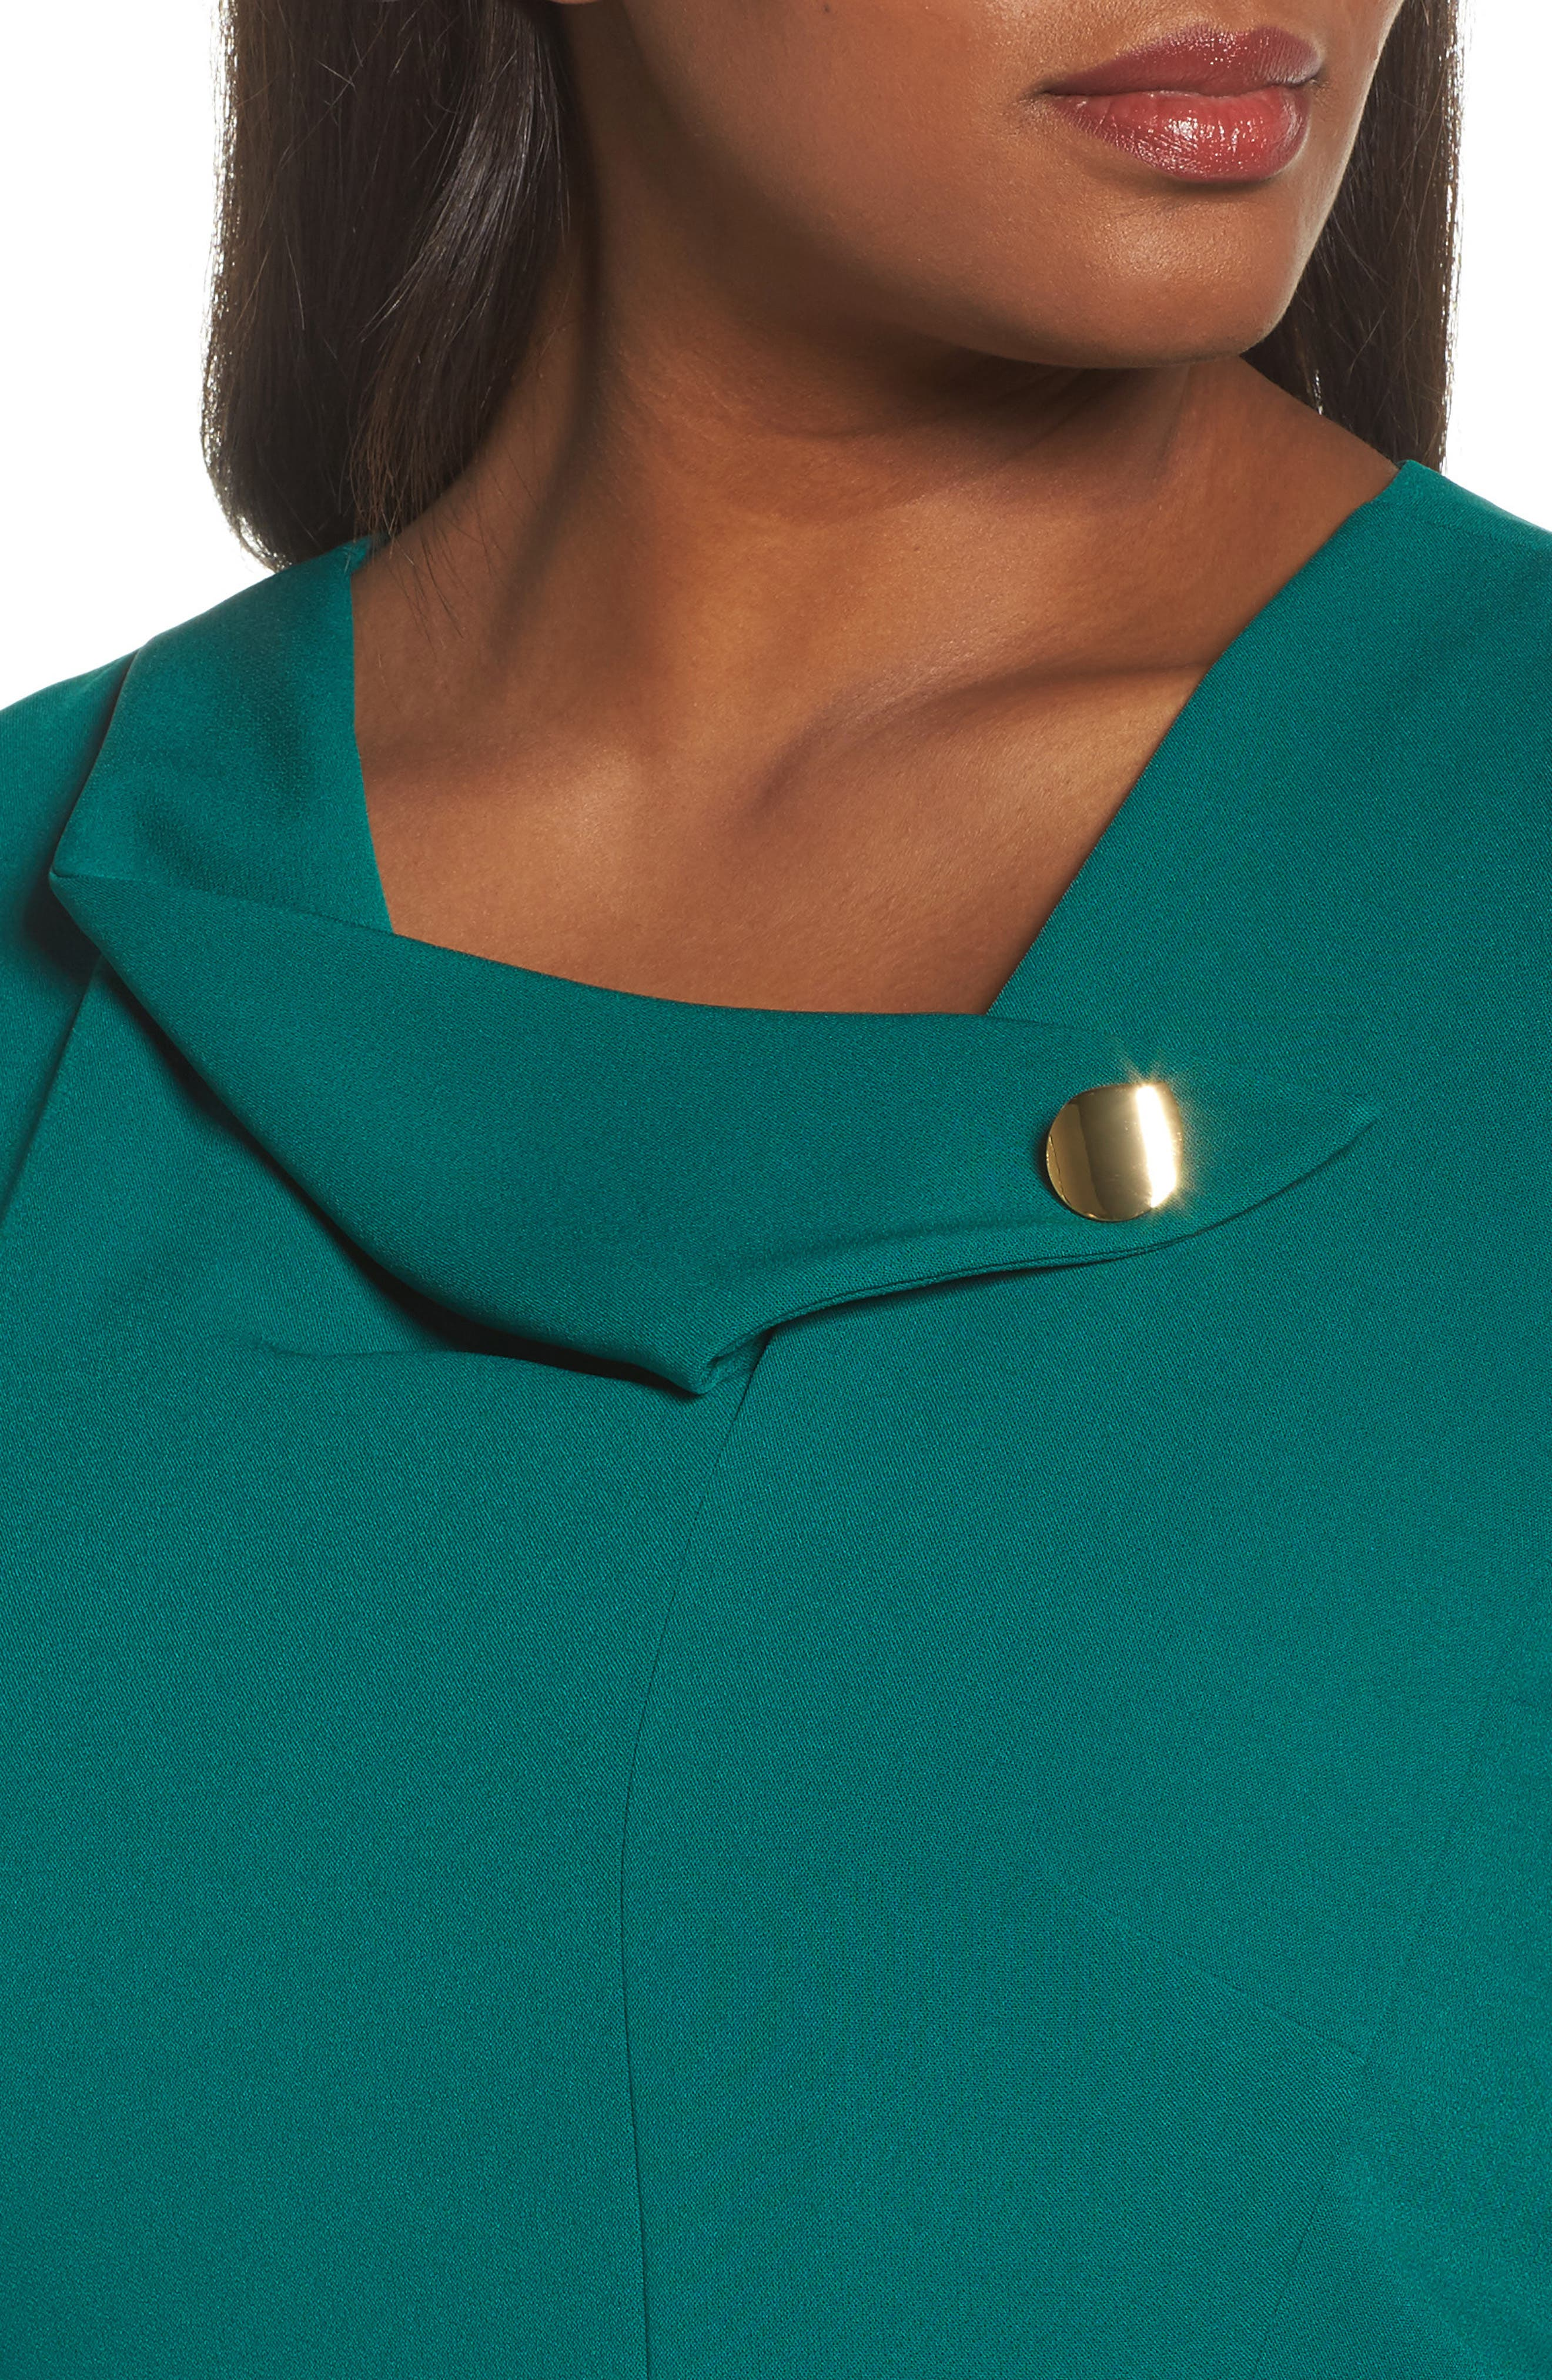 Envelope Neck with Button Sheath Dress,                             Alternate thumbnail 4, color,                             Emerald